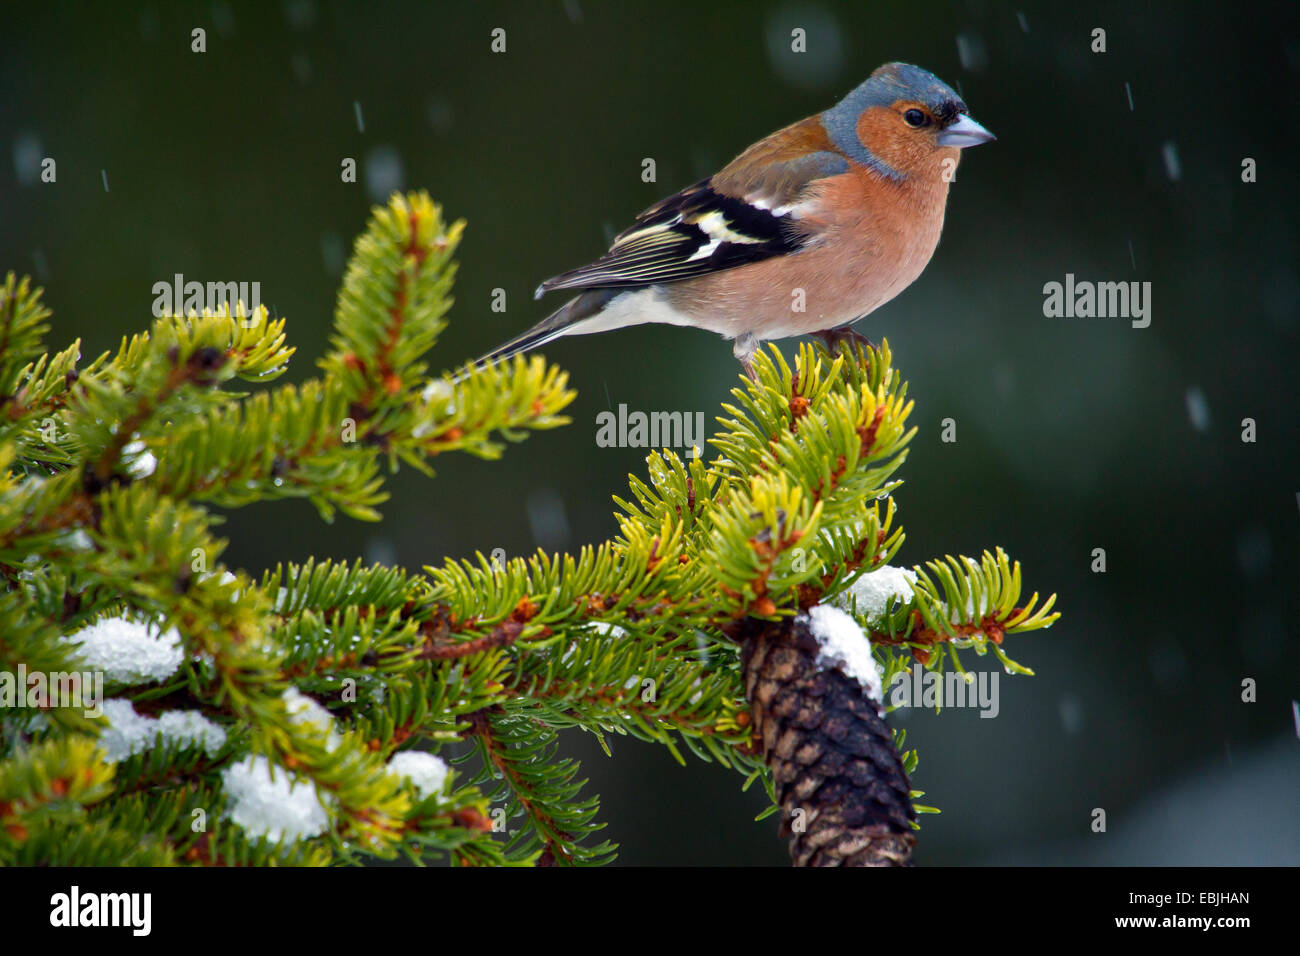 chaffinch (Fringilla coelebs), siting on a spruce branch, Sweden, Hamra National Park Stock Photo